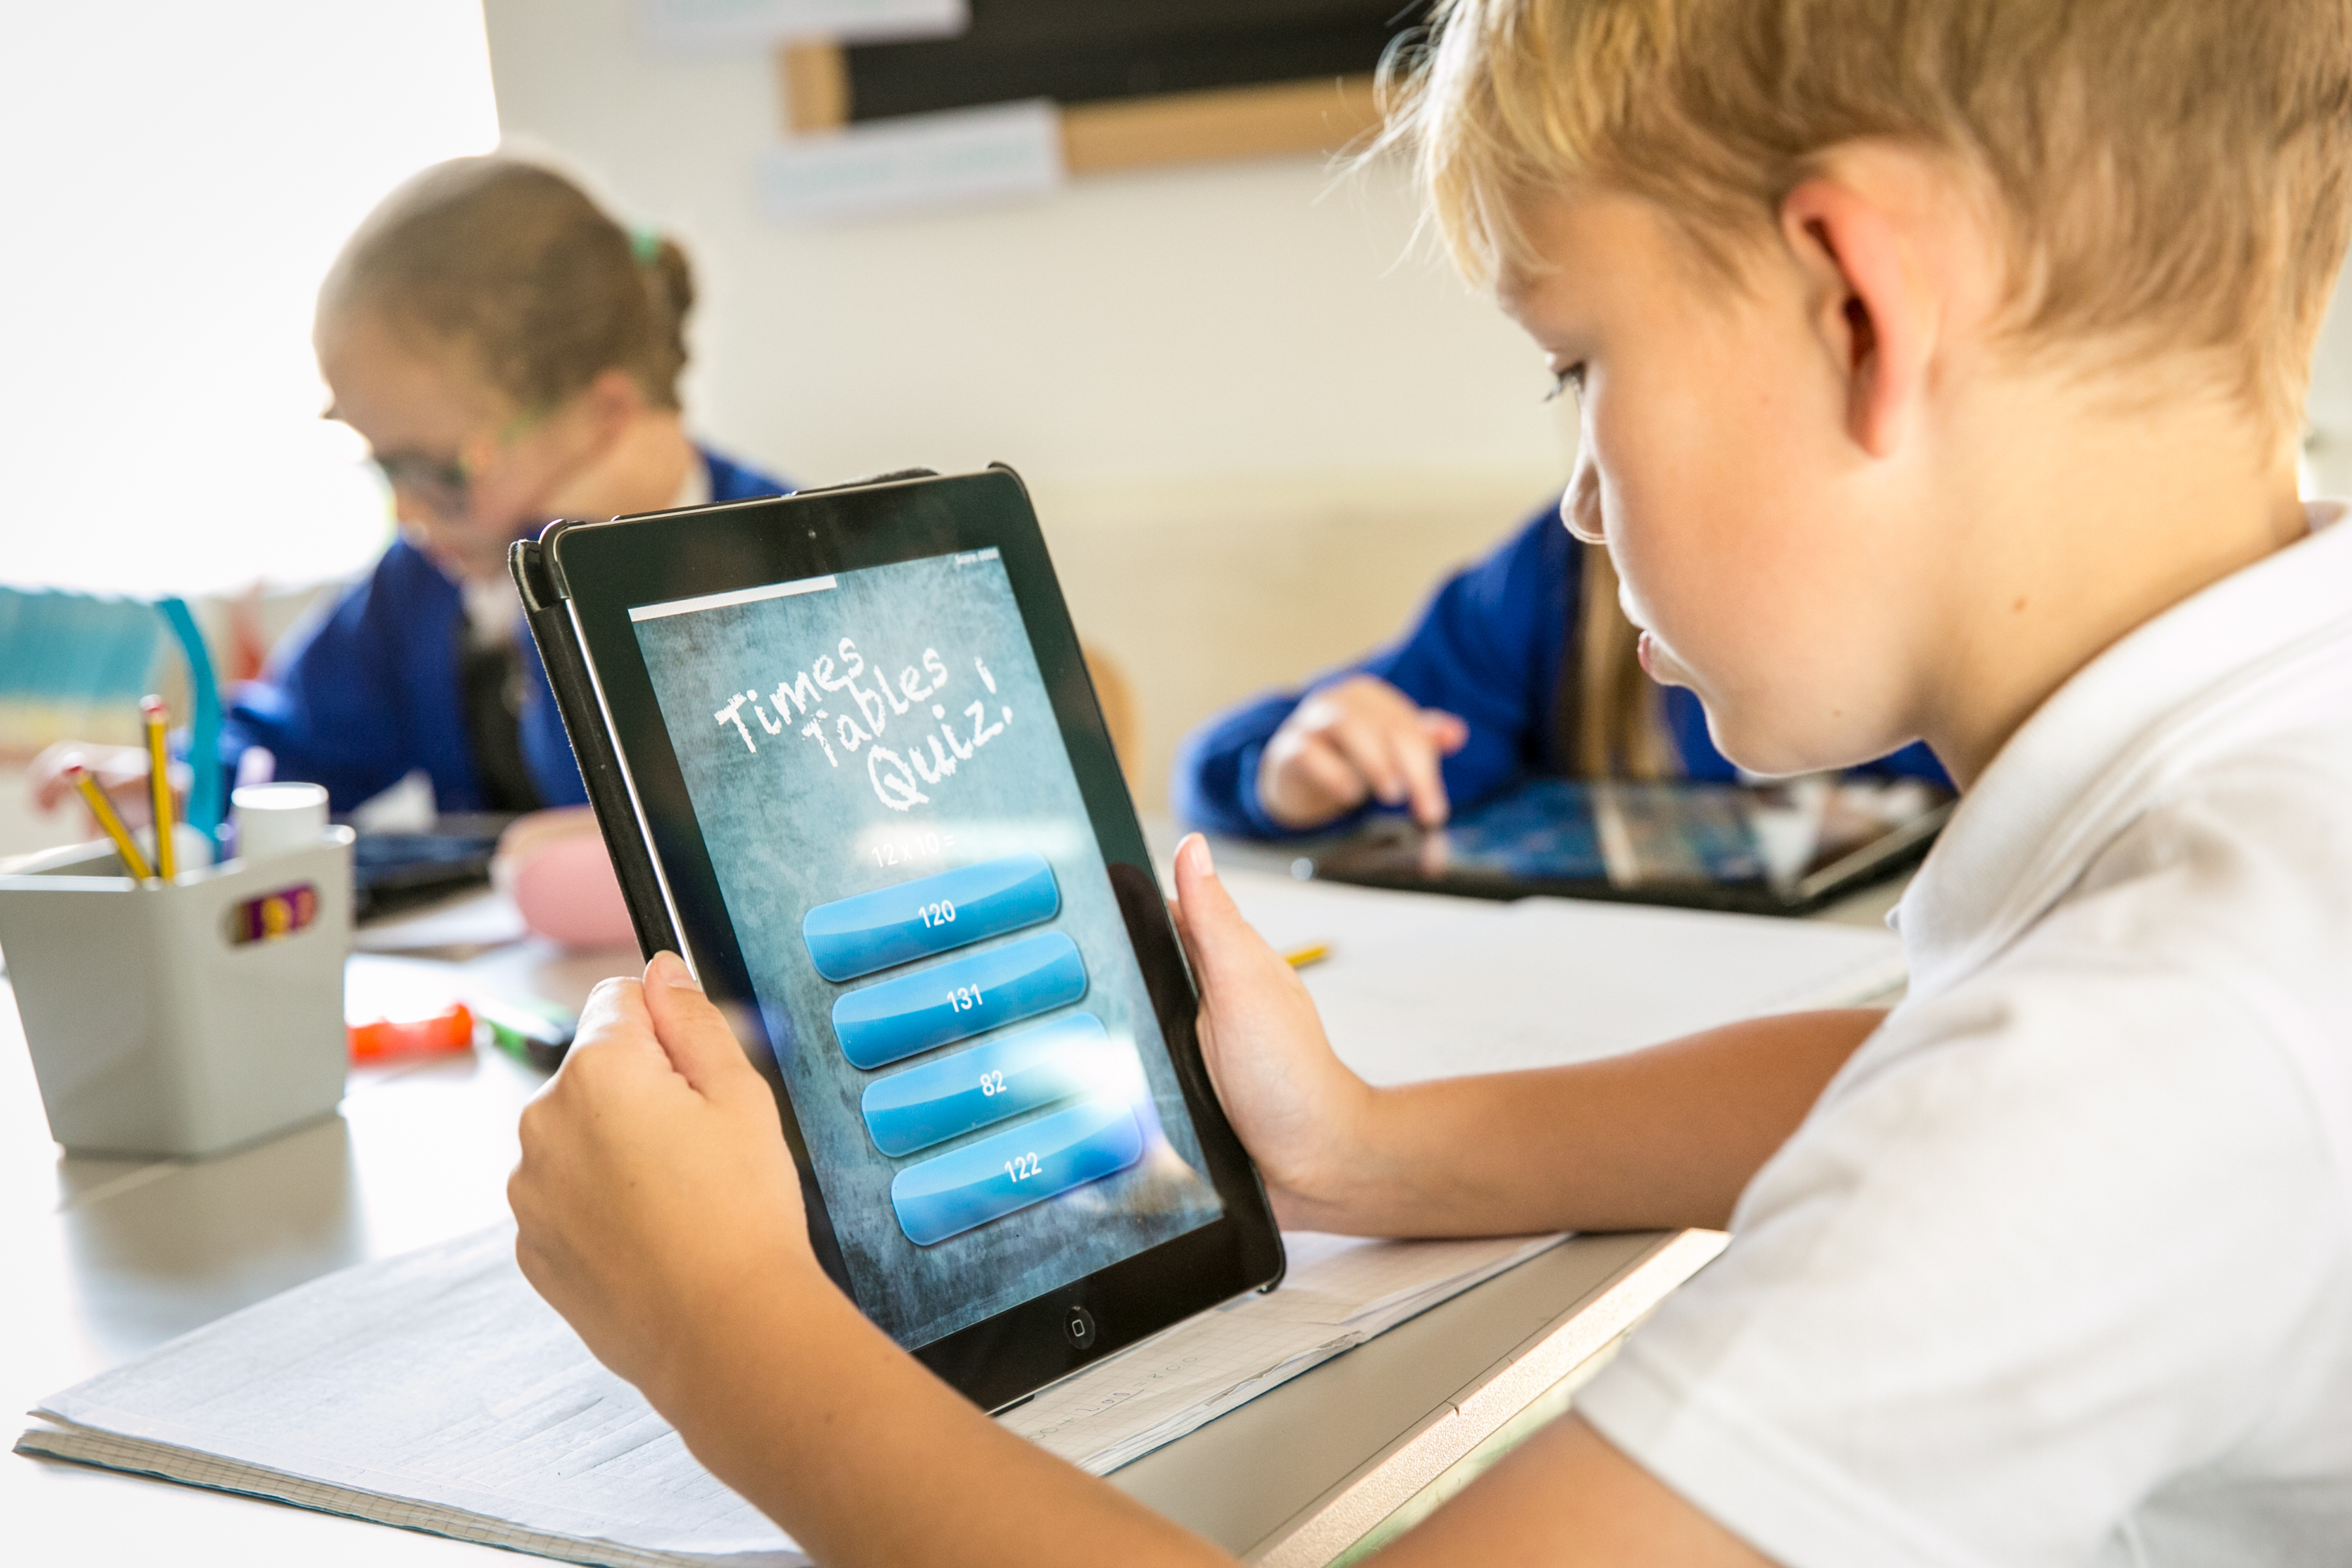 iPads to improve mathematical fluency.